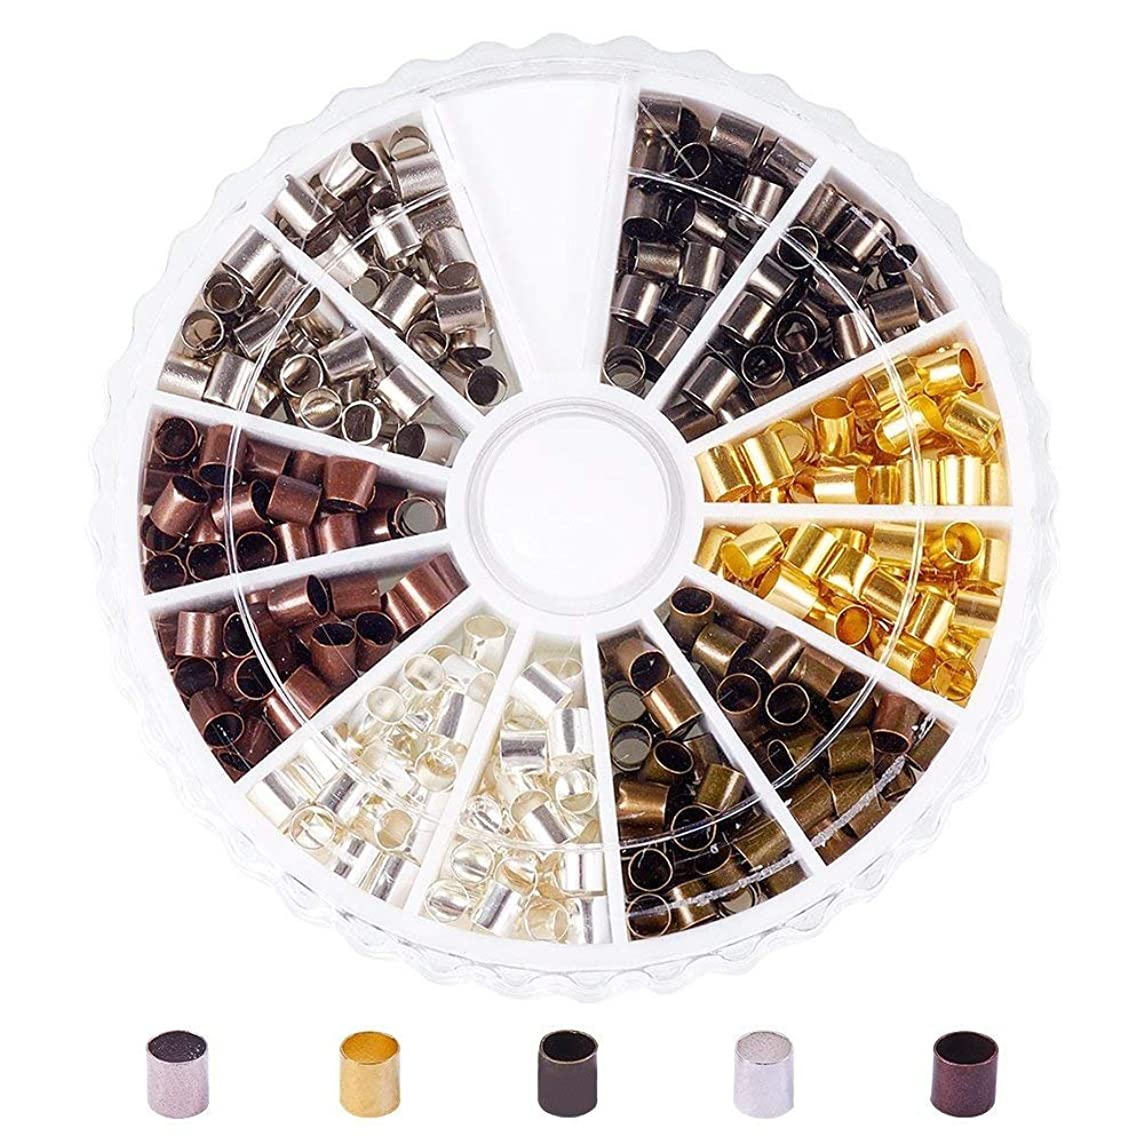 PandaHall Elite About 420 Pcs Brass Tube Crimp Beads Cord End Caps Diameter 3mm for Jewelry Making 6 Colors